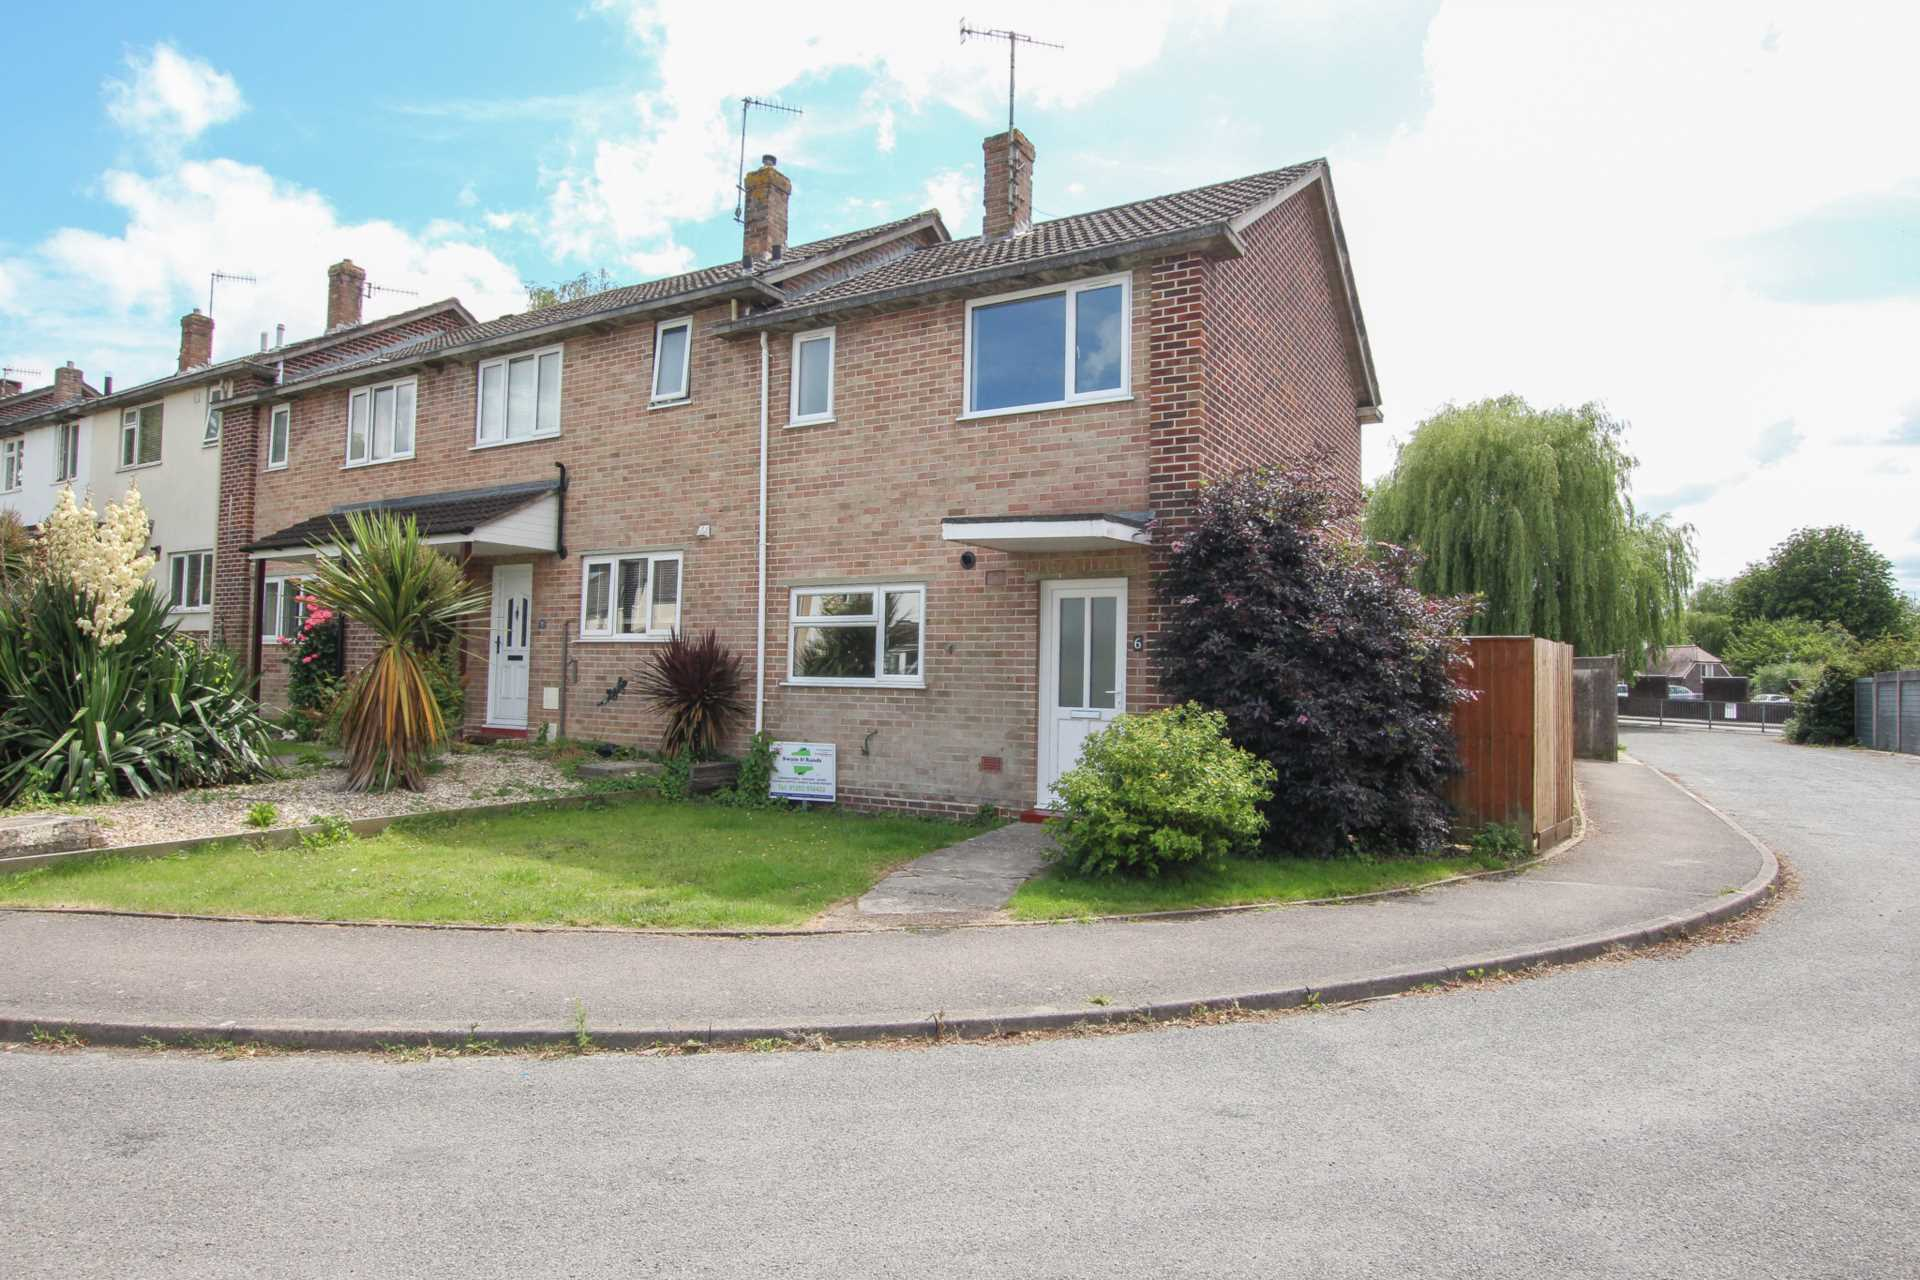 2 bed end of terrace house to rent in Fishers Close, Blandford Forum, Blandford Forum 0